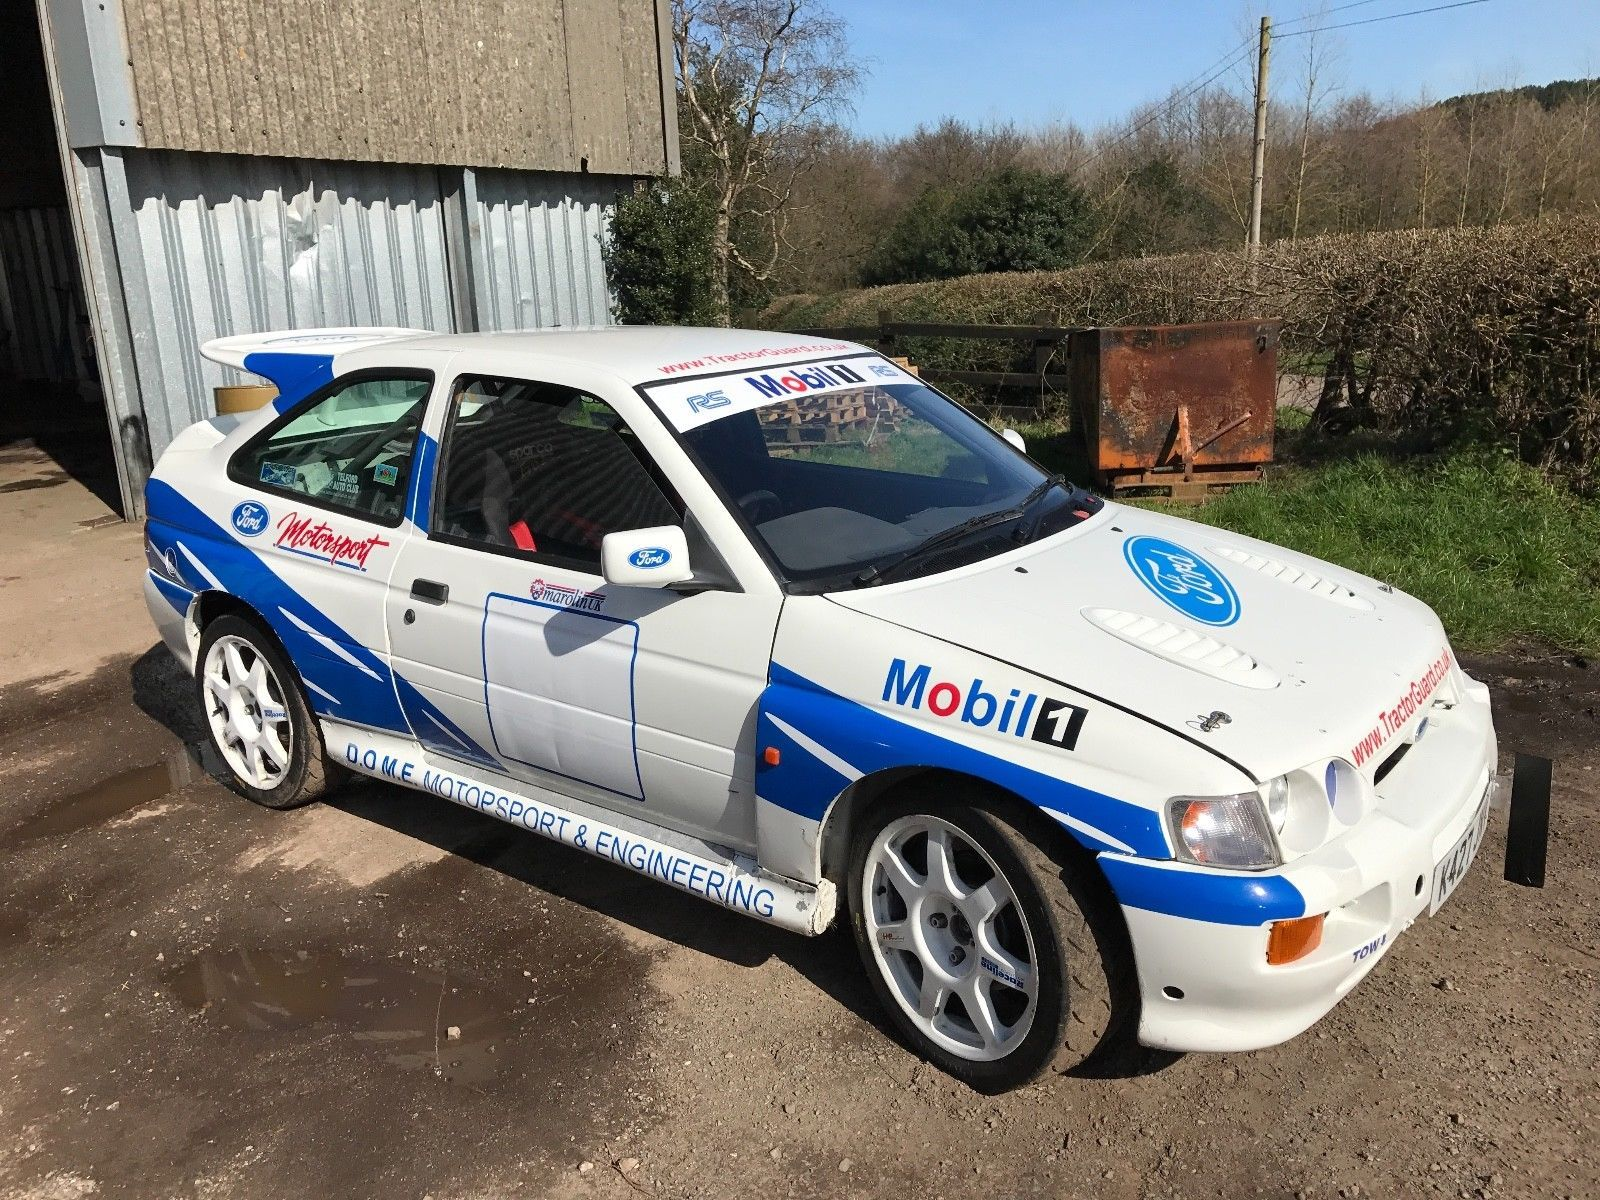 Ford Escort RS Cosworth Rally Car | Ford escort, Rally car and Rally